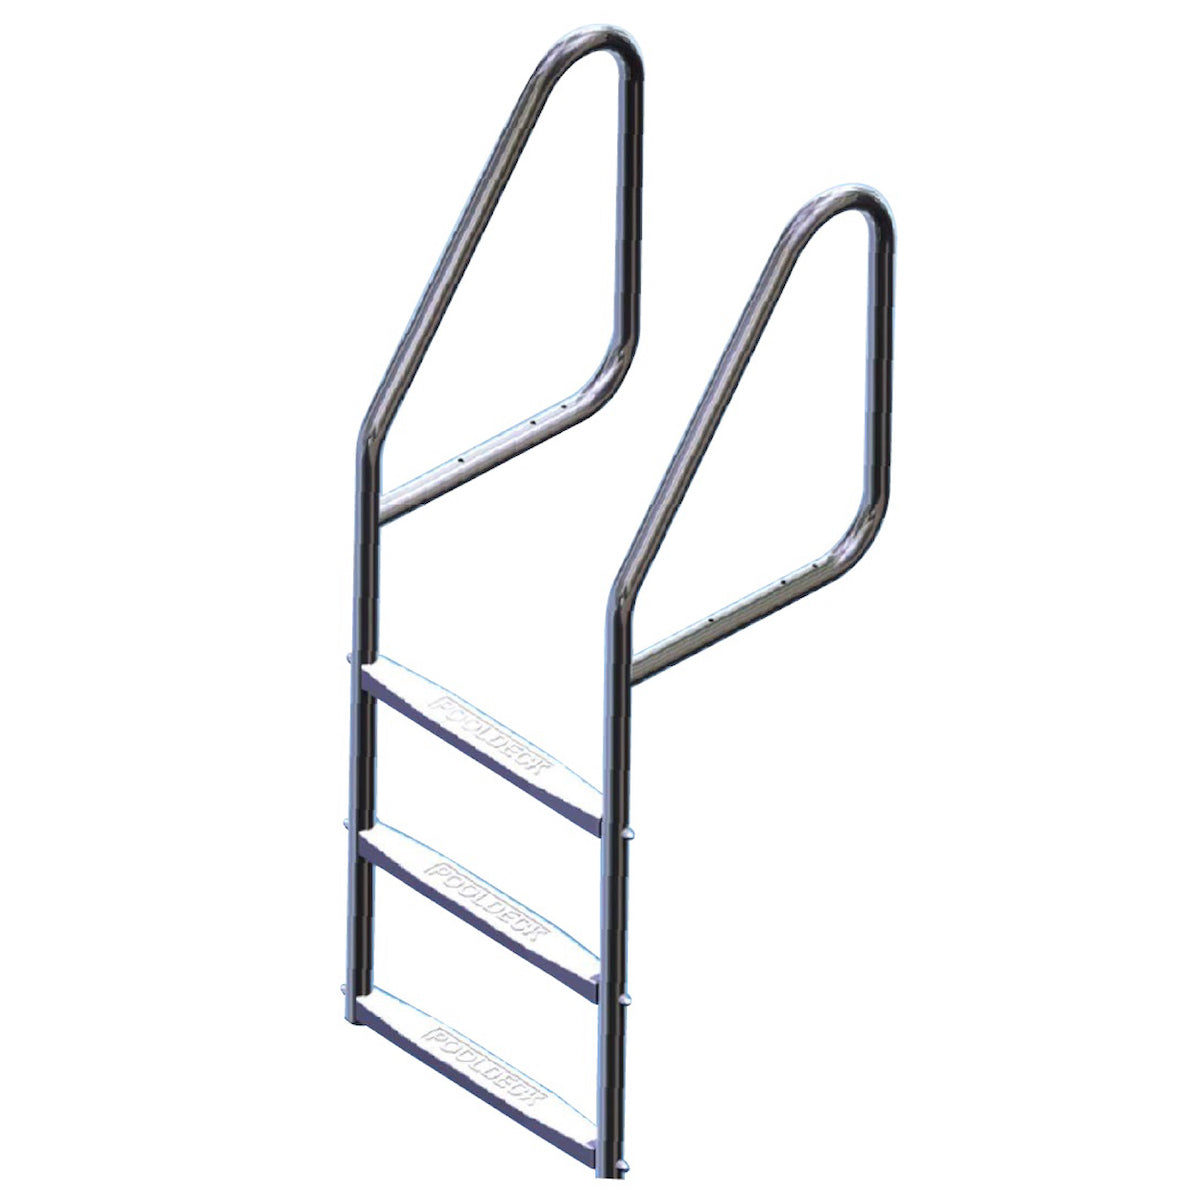 products/Stainless_Steel_Deck_Ladder_be9f543e-6076-495f-8f4c-d3015cf92edf.jpg